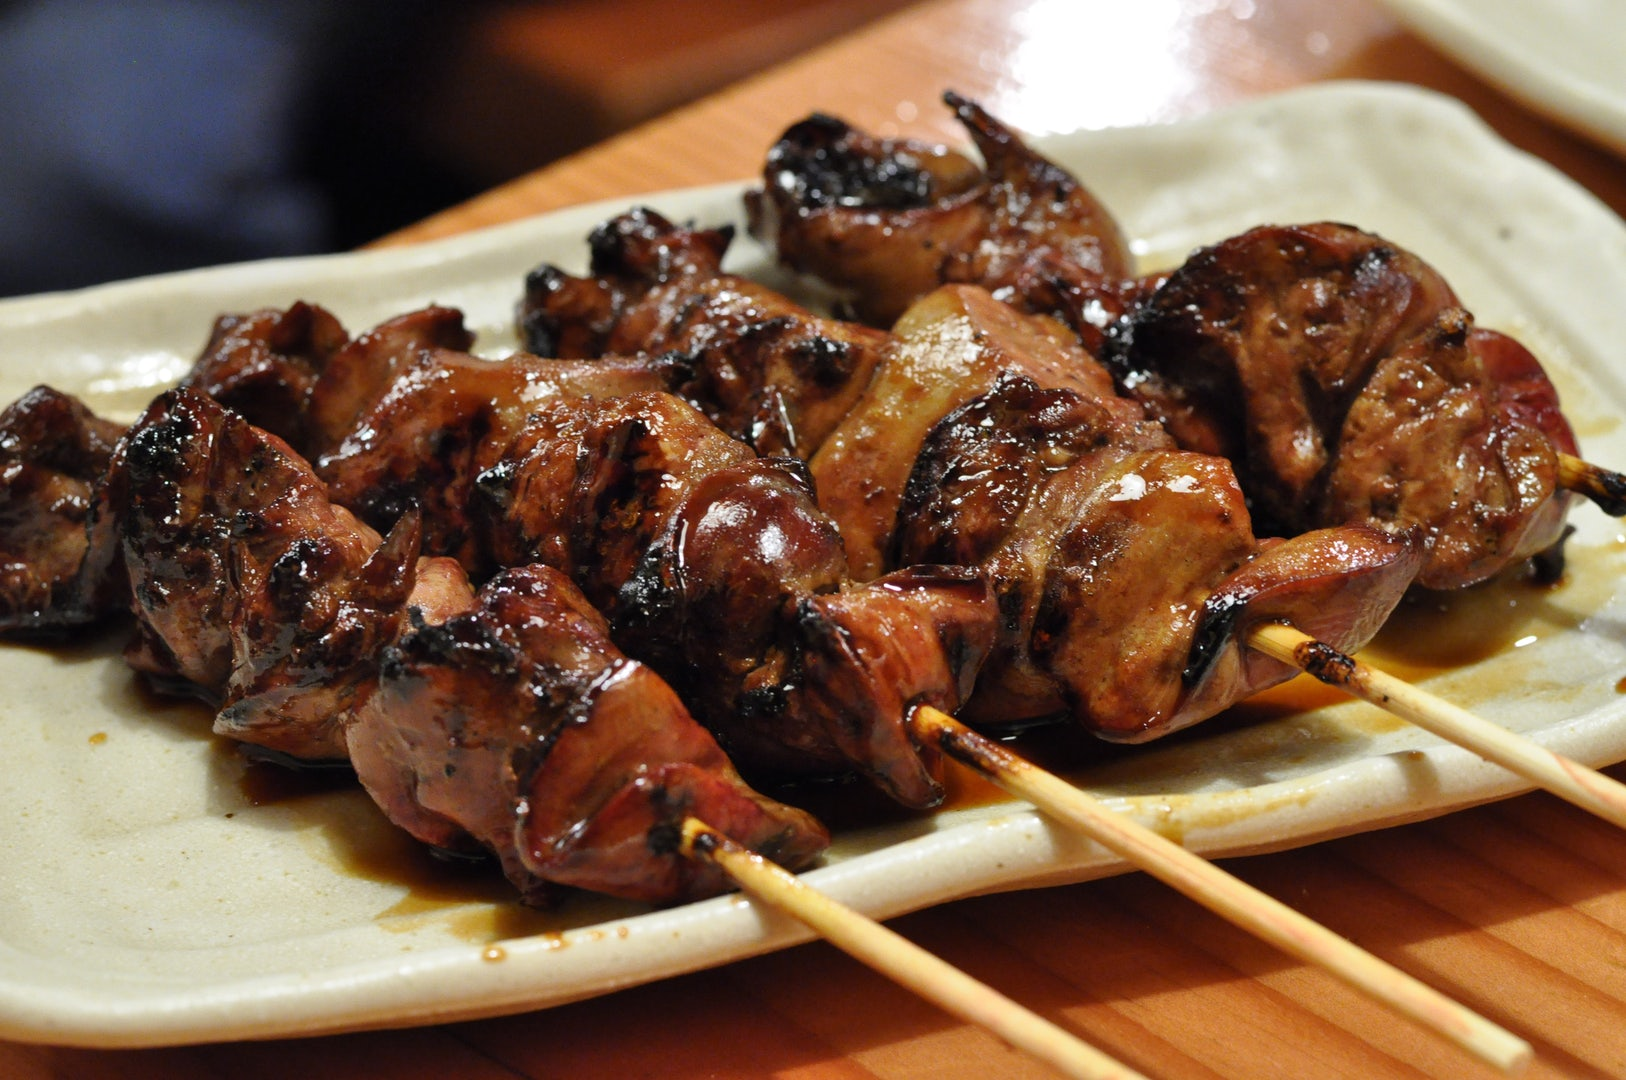 Yakoitori skewers on a plate